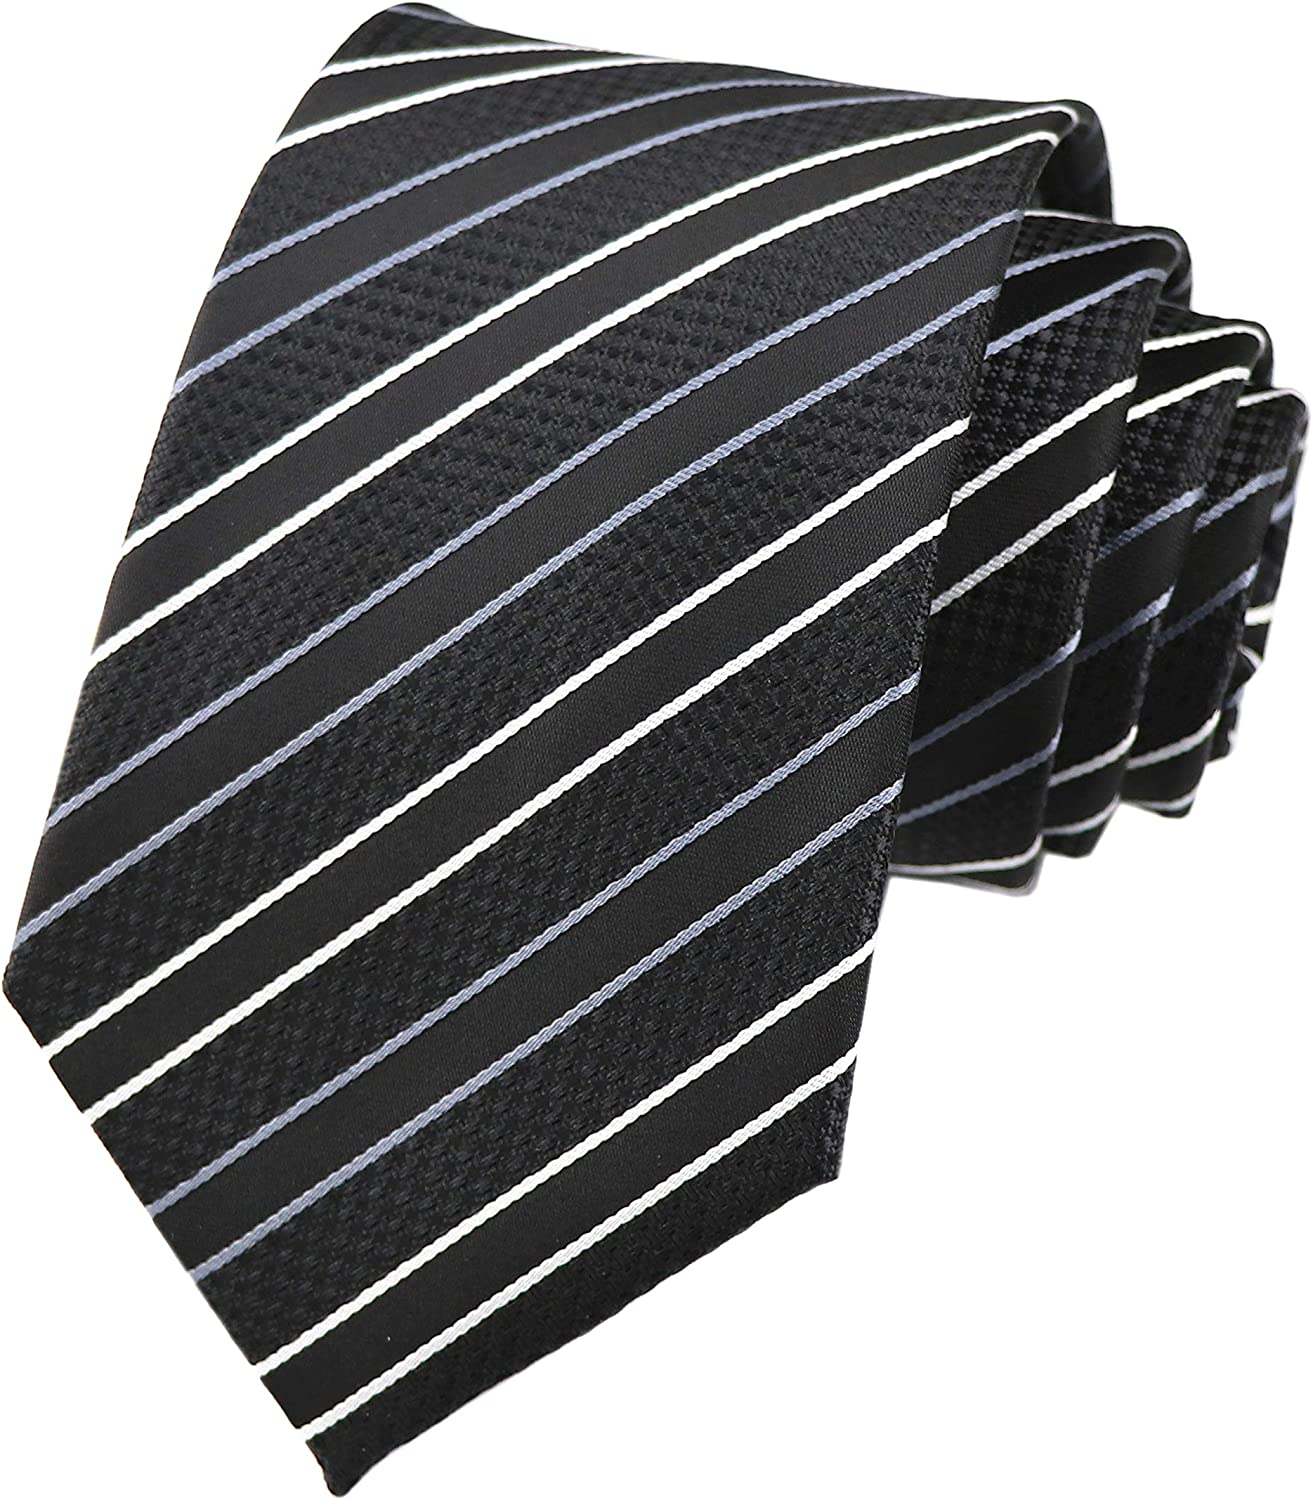 Black and White Striped Business Ties Black and White Striped Tie Set Black and White Striped Tie and Pocket Square JW Ties